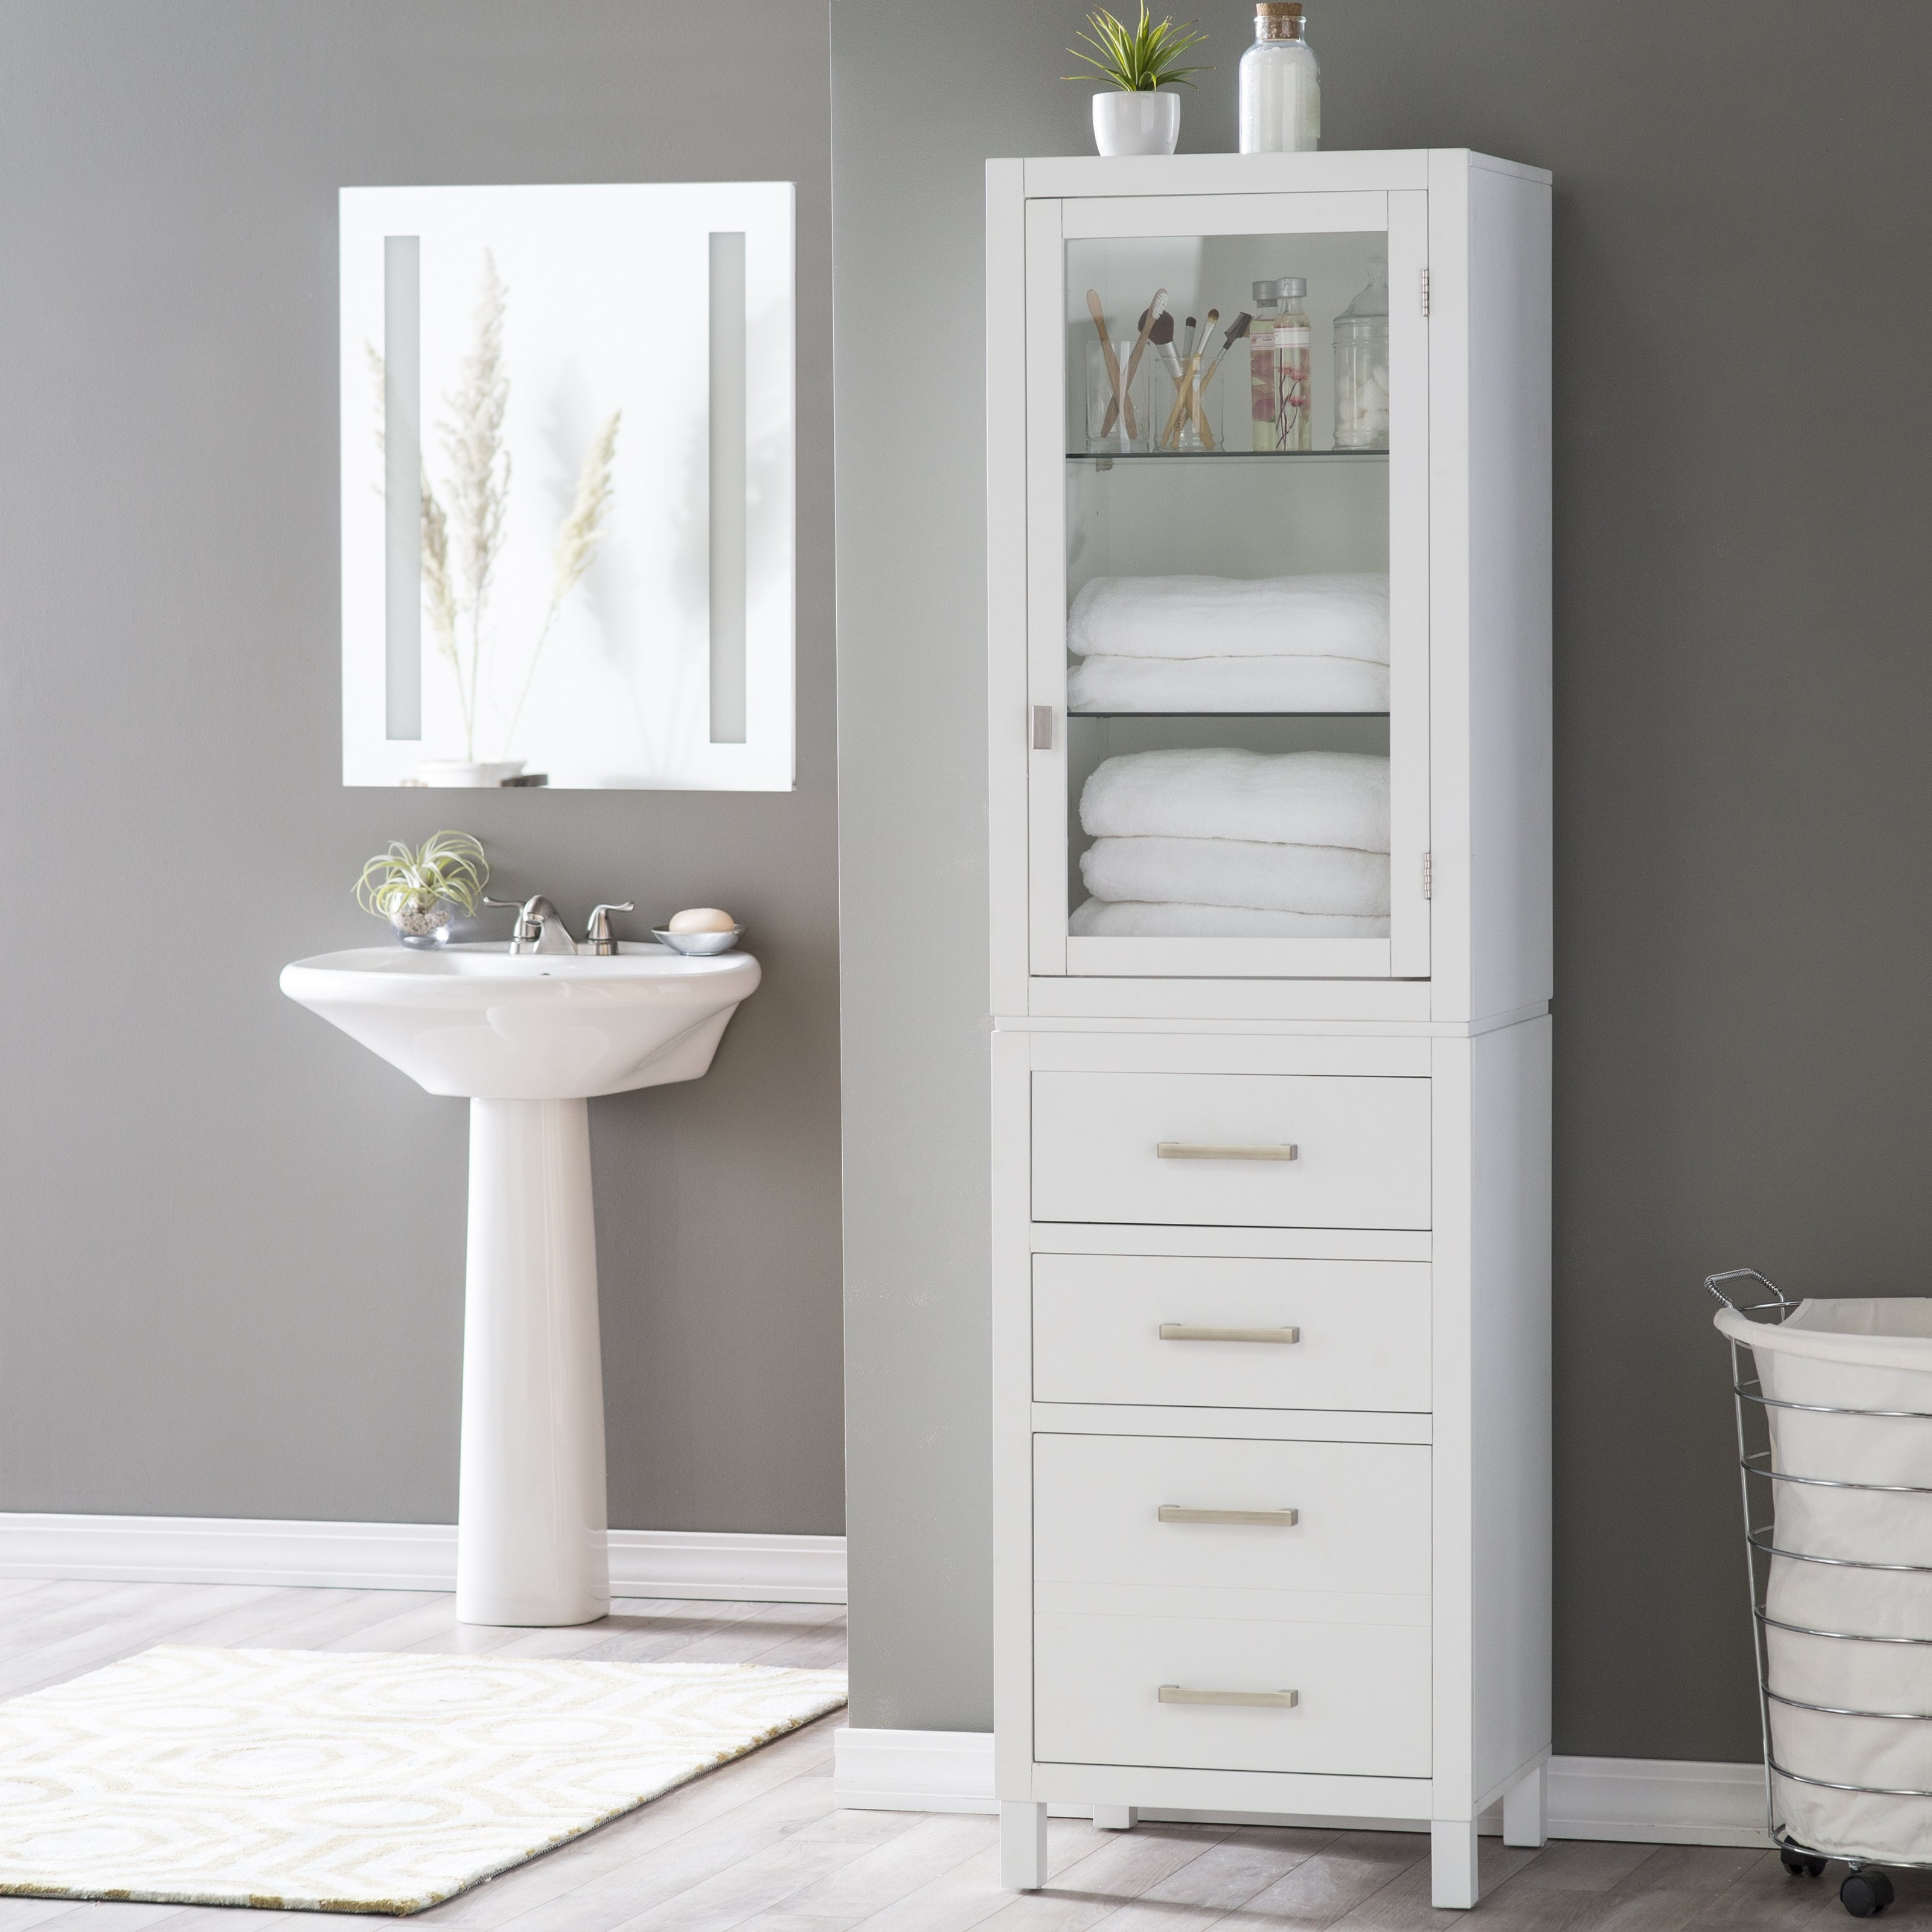 Free Standing Bathroom Cabinets Ikea